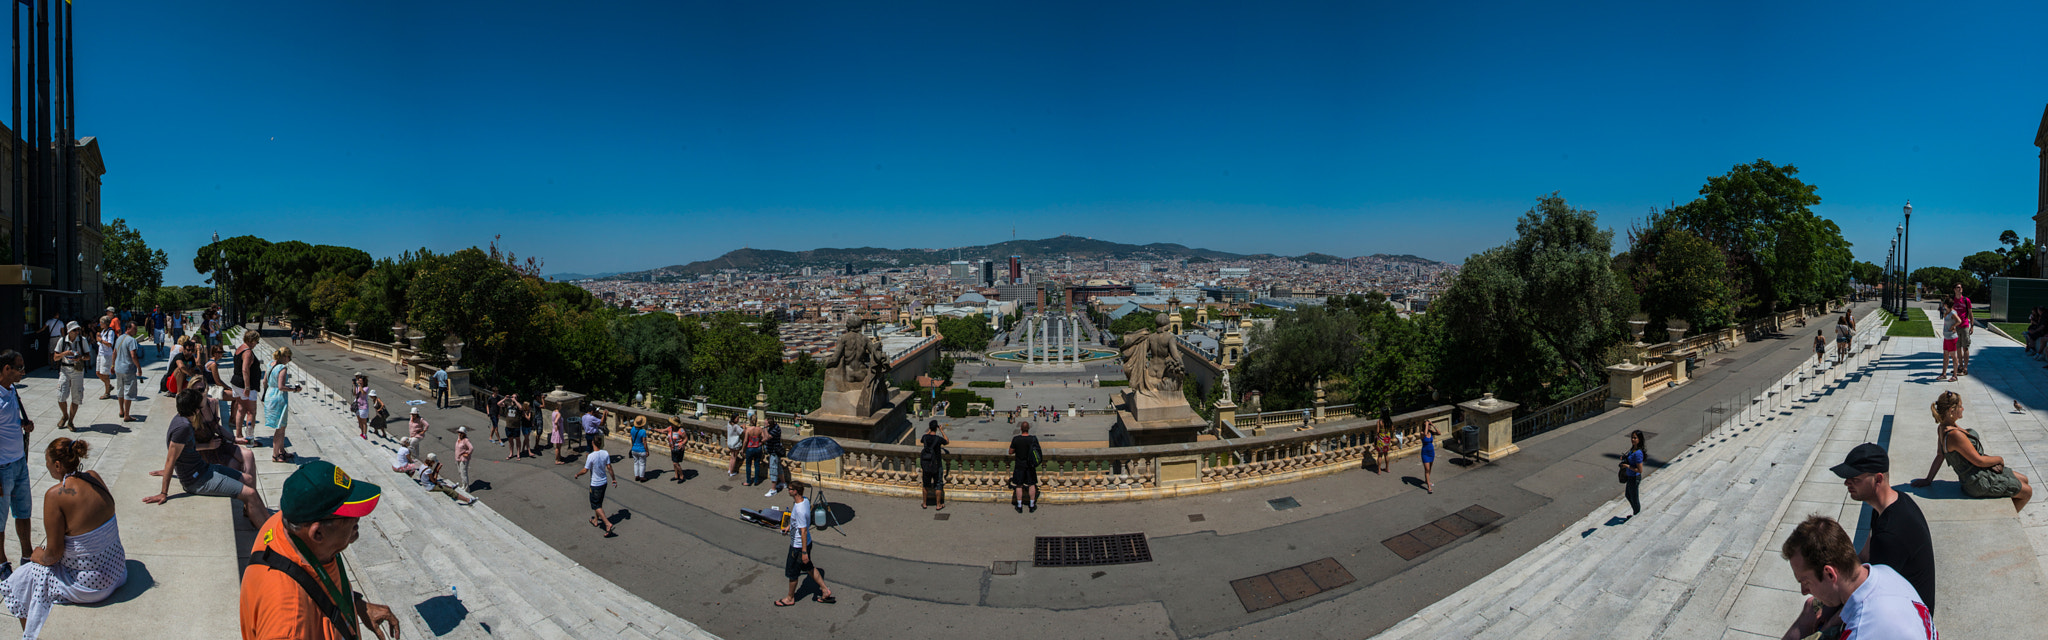 Photograph Barcelona Panorama by Ammar Shaban on 500px